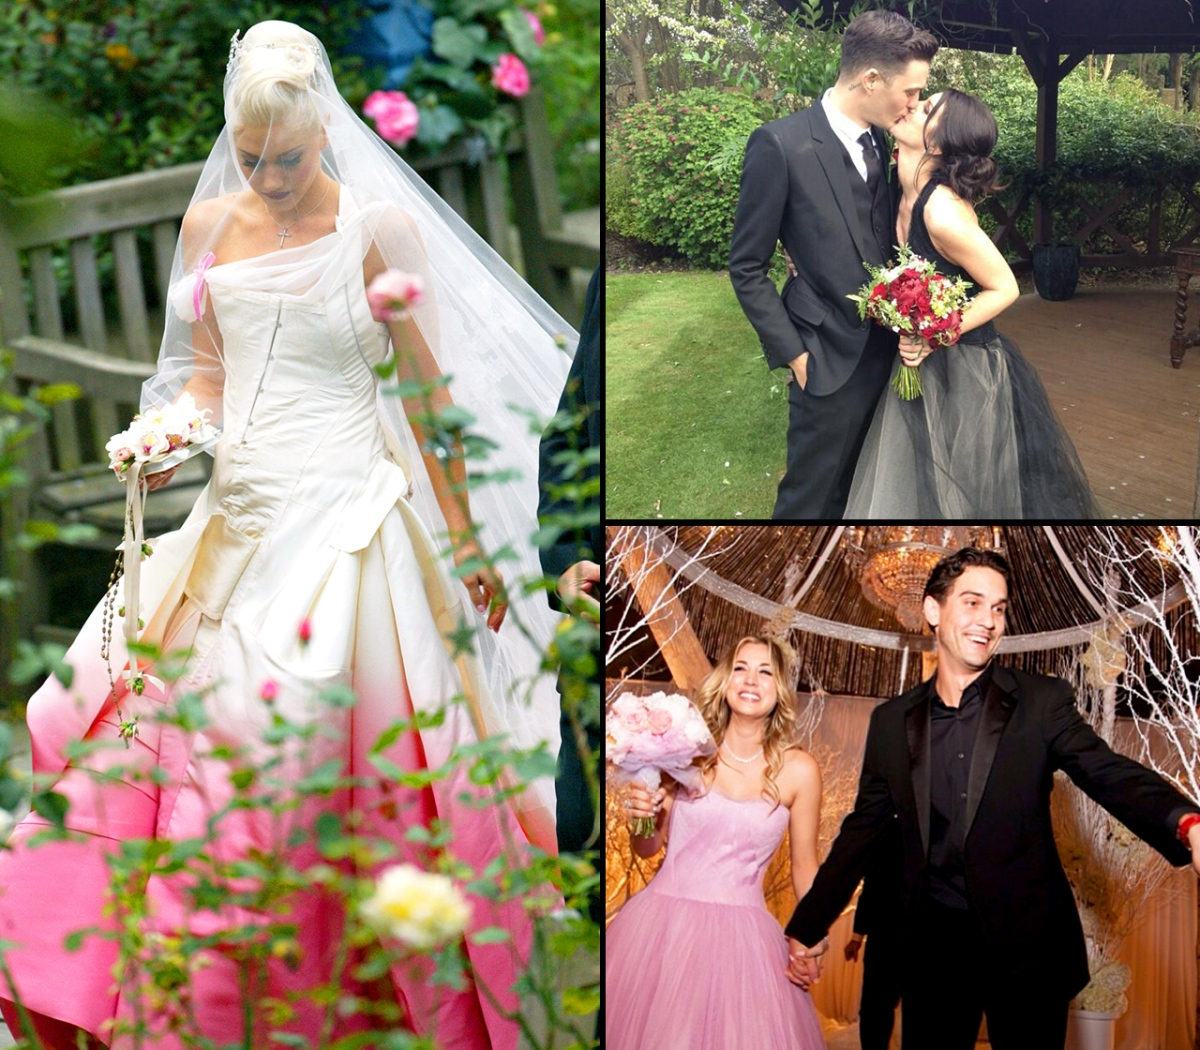 Celebrity Brides Who Don\'t Wear White: Yellow, Pink, Black, and More ...